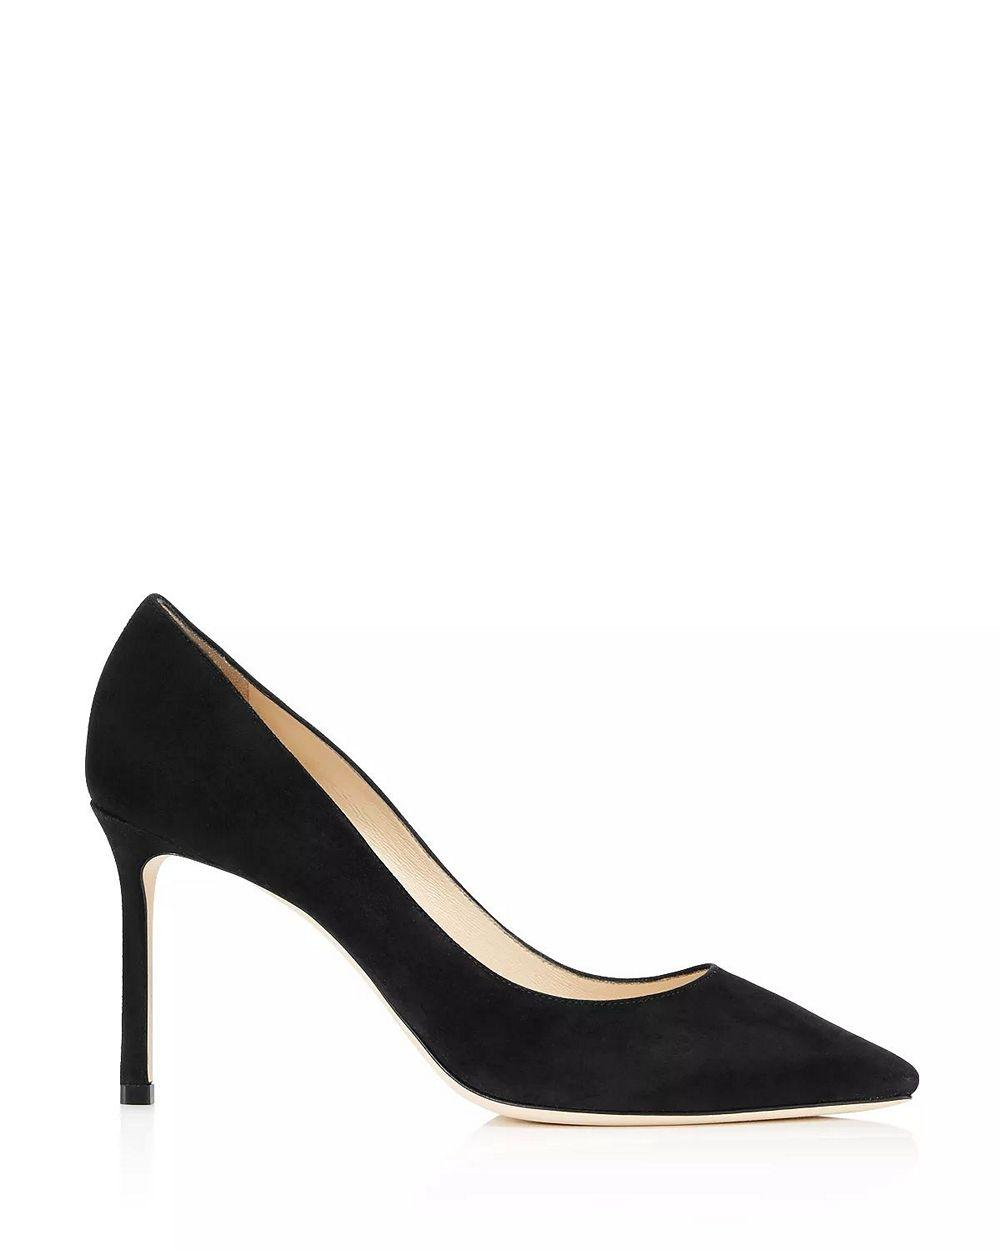 Romy 85mm Suede Pump